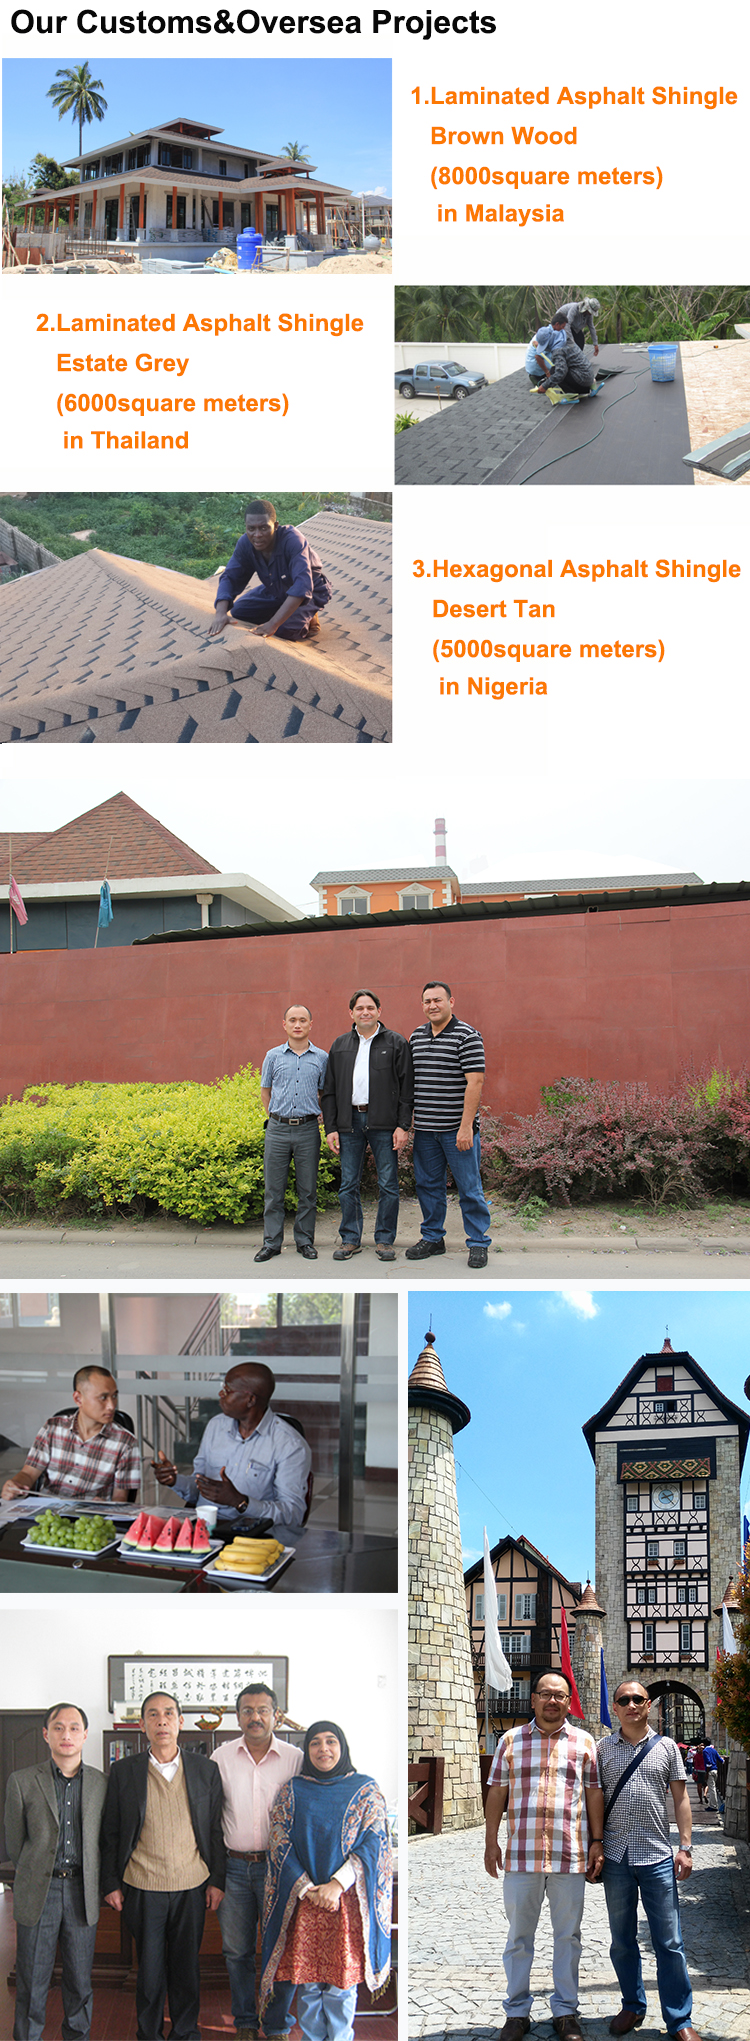 Our Customer&Oversea Projects